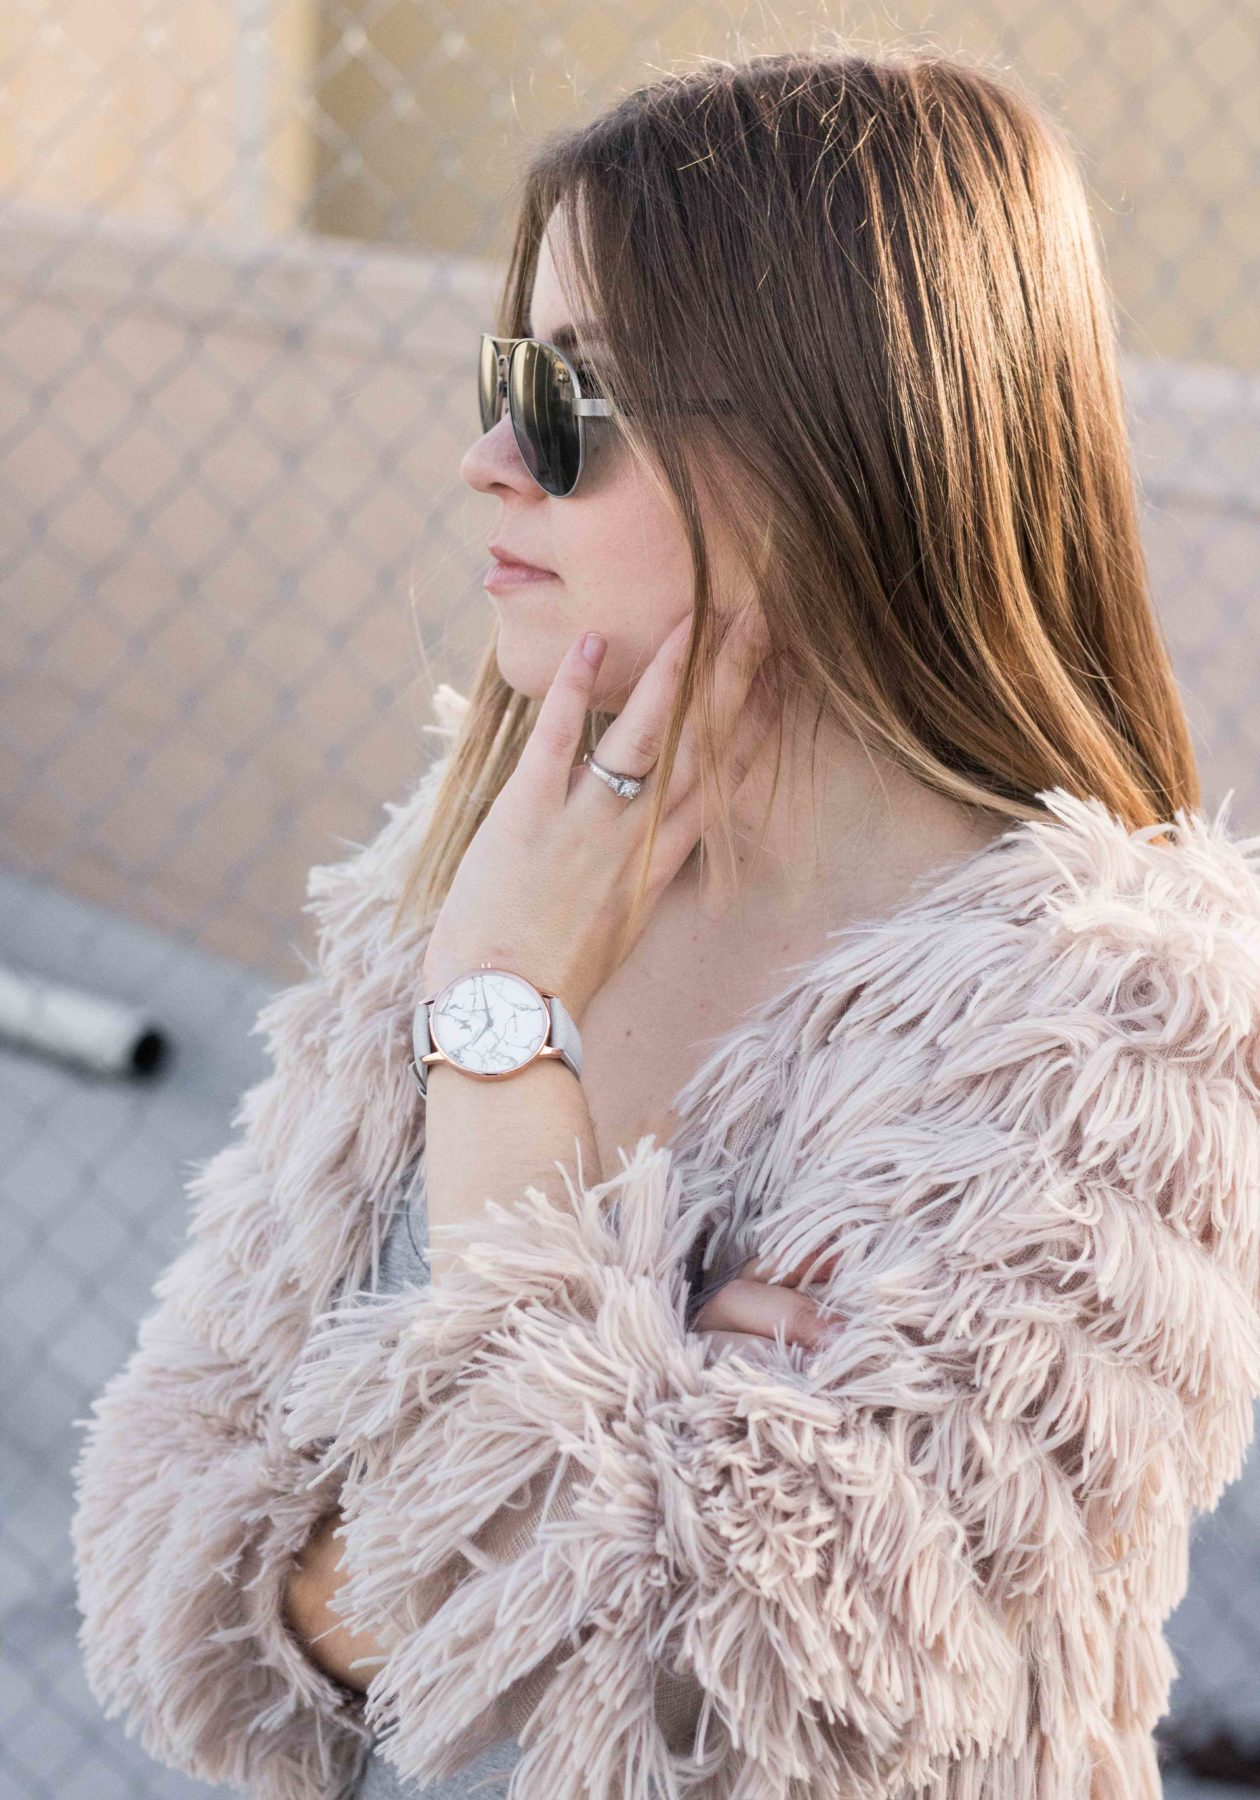 MVMT women marble watch